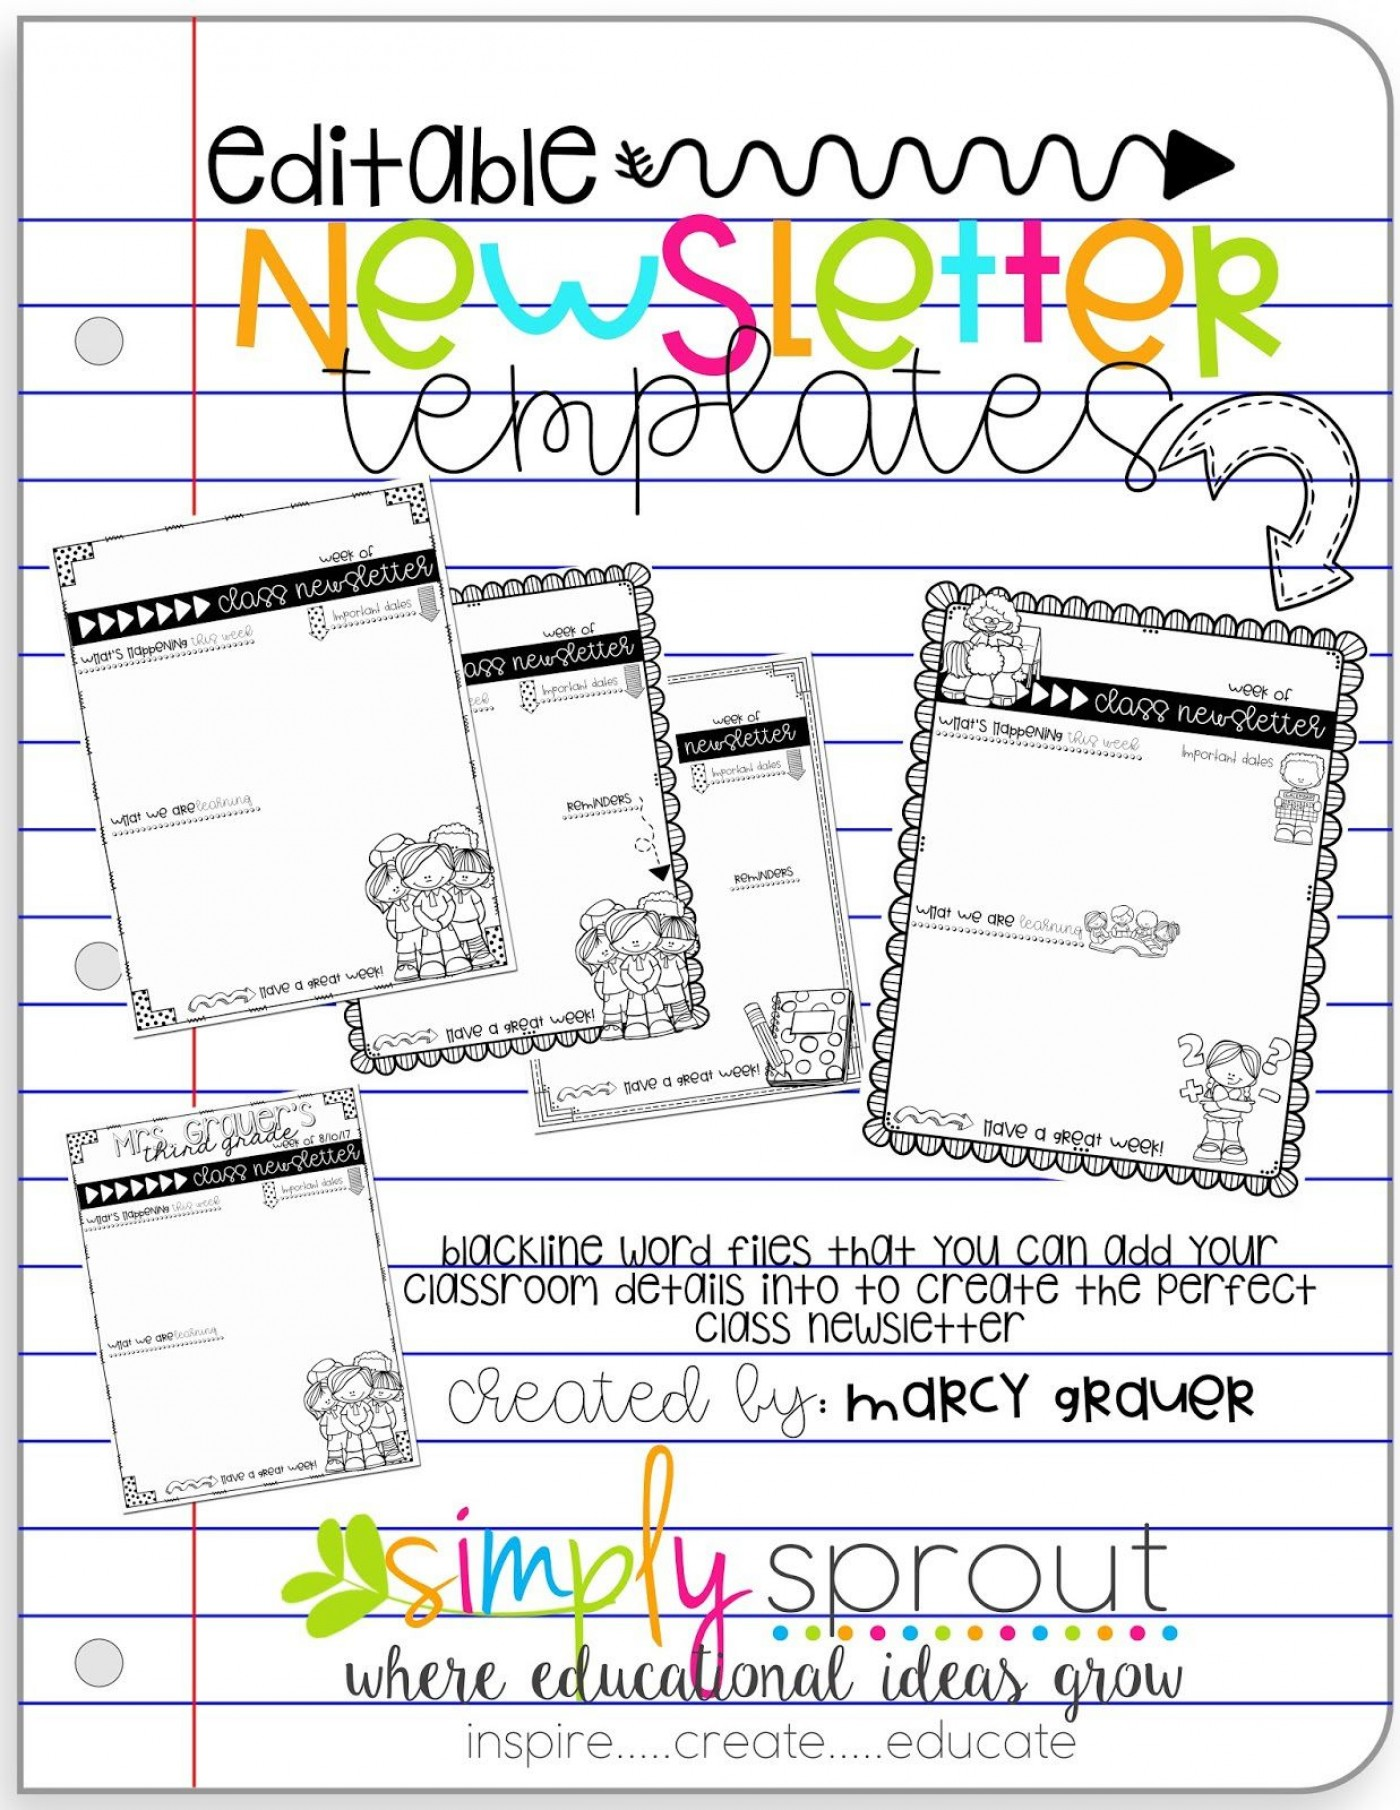 009 Astounding School Newsletter Template Free Image  Word Download Counselor1400